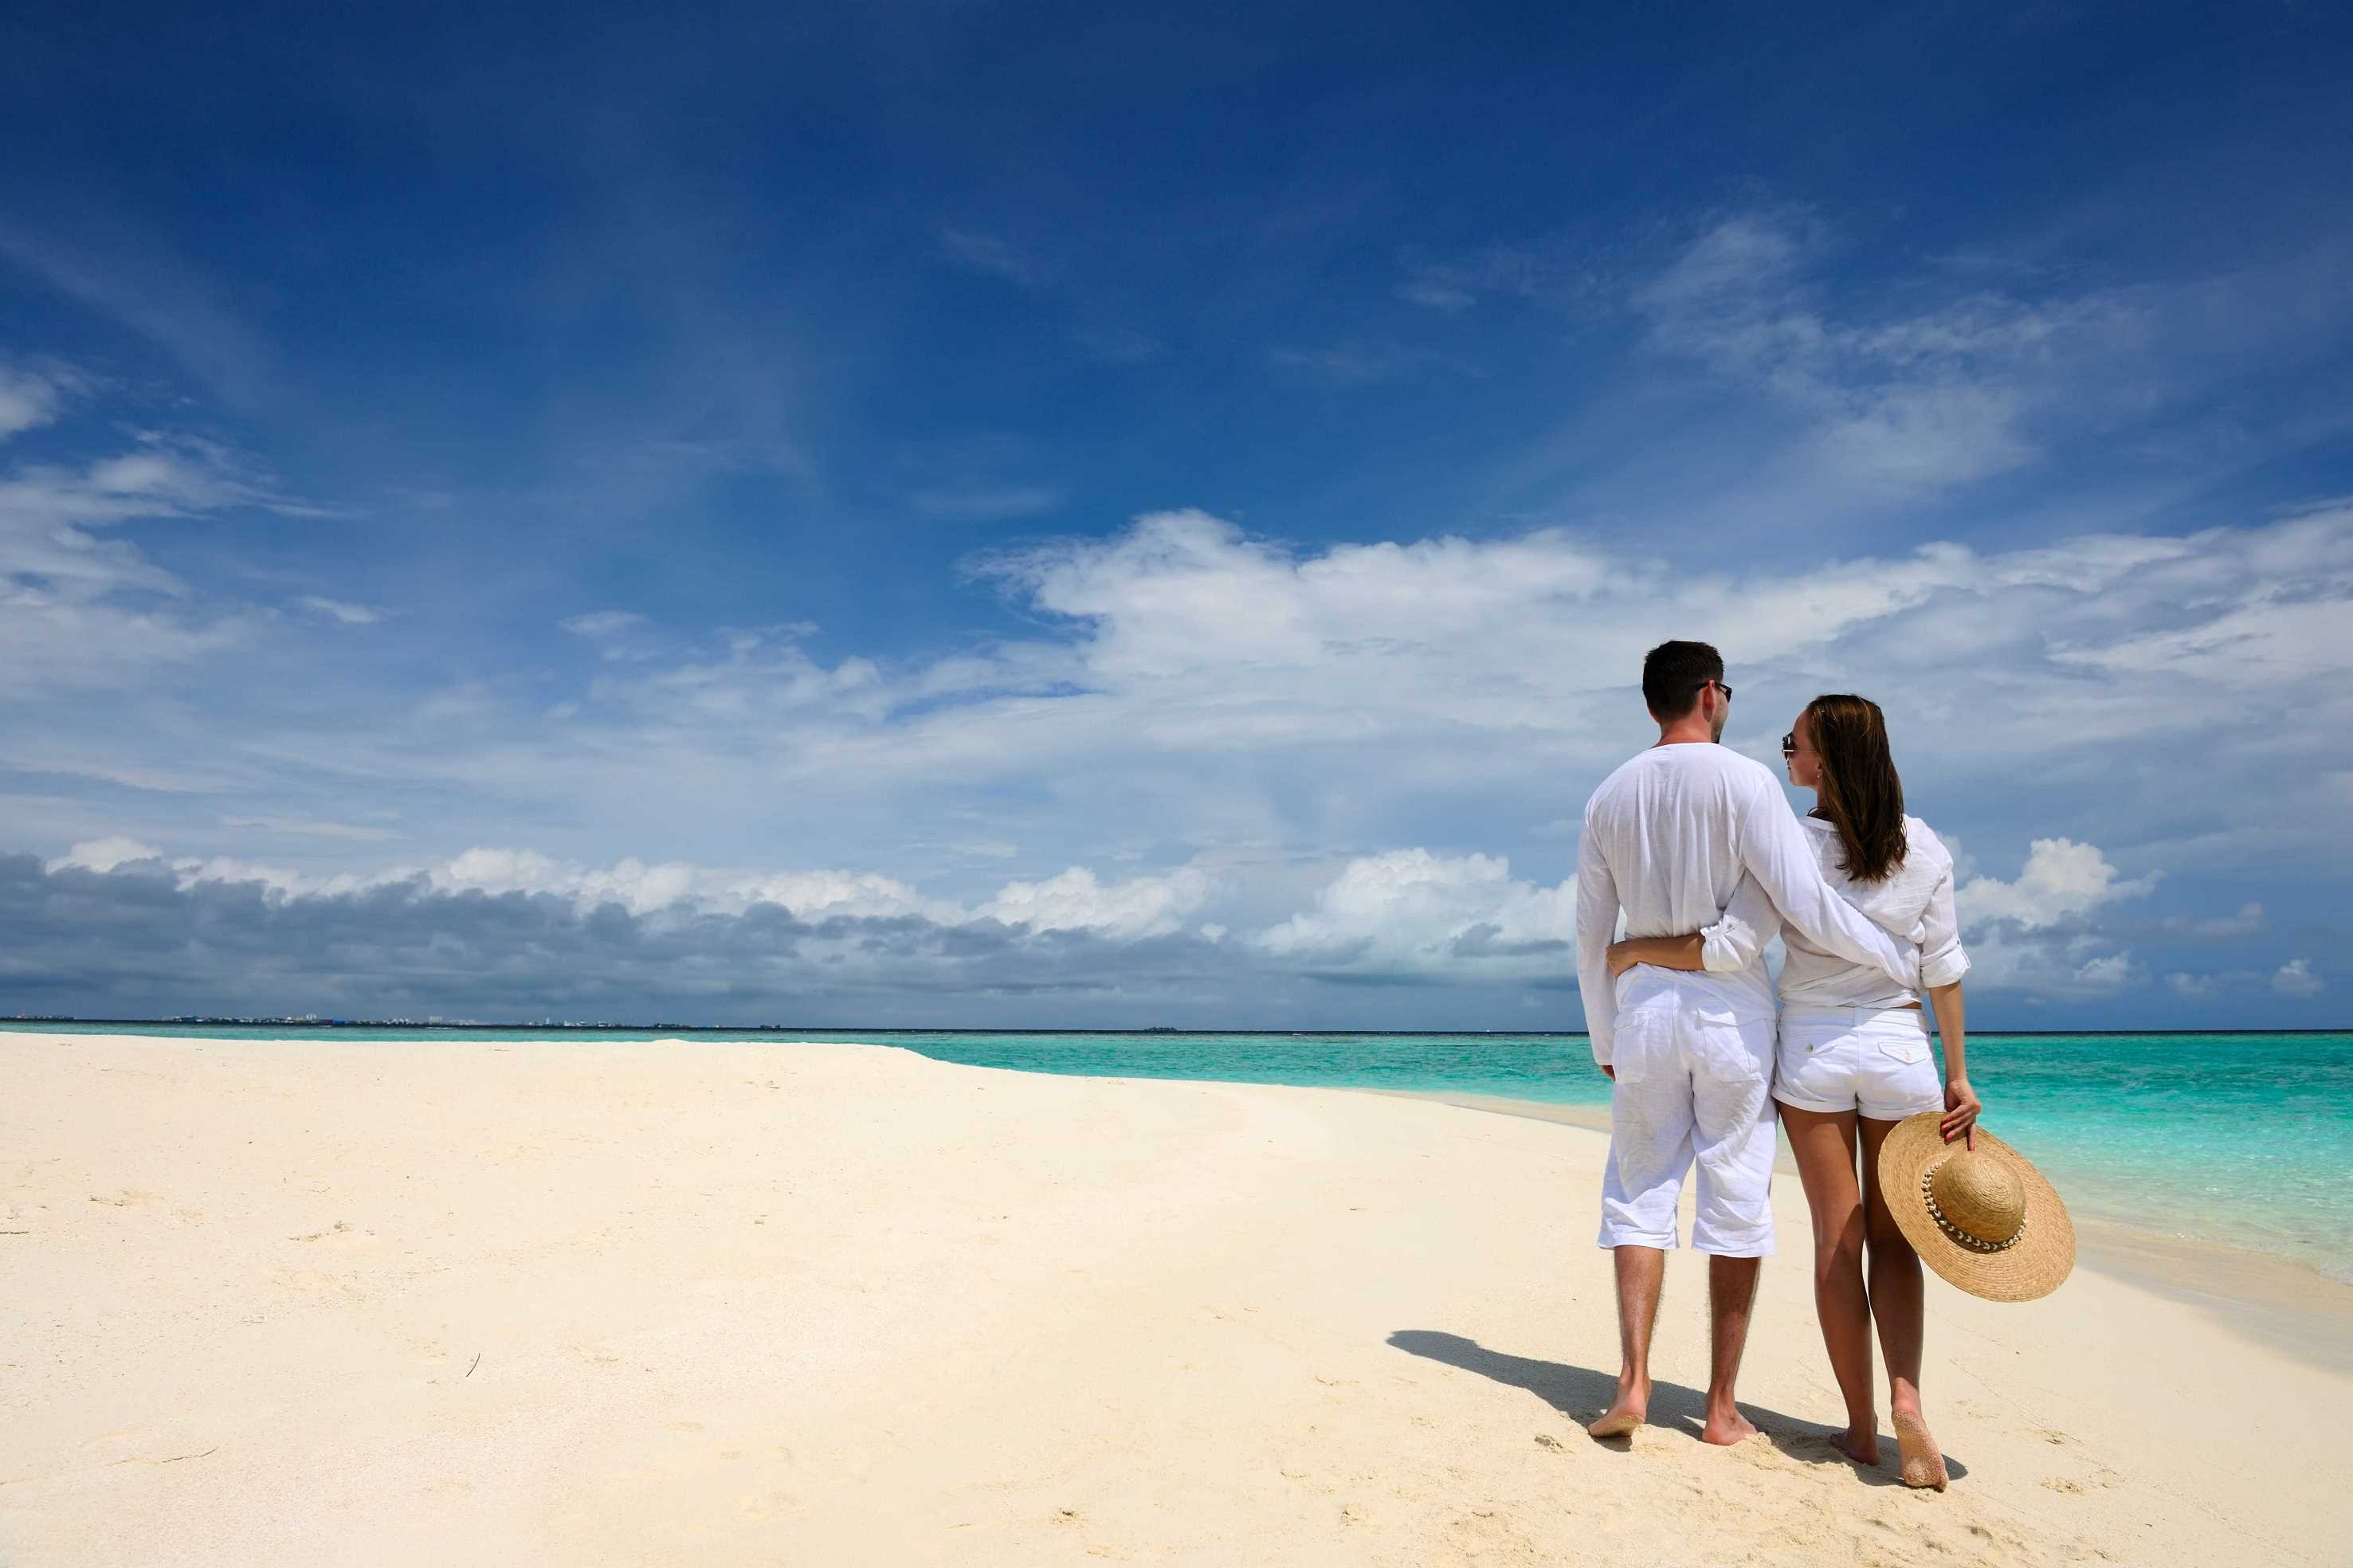 Man and Woman in White on Beach